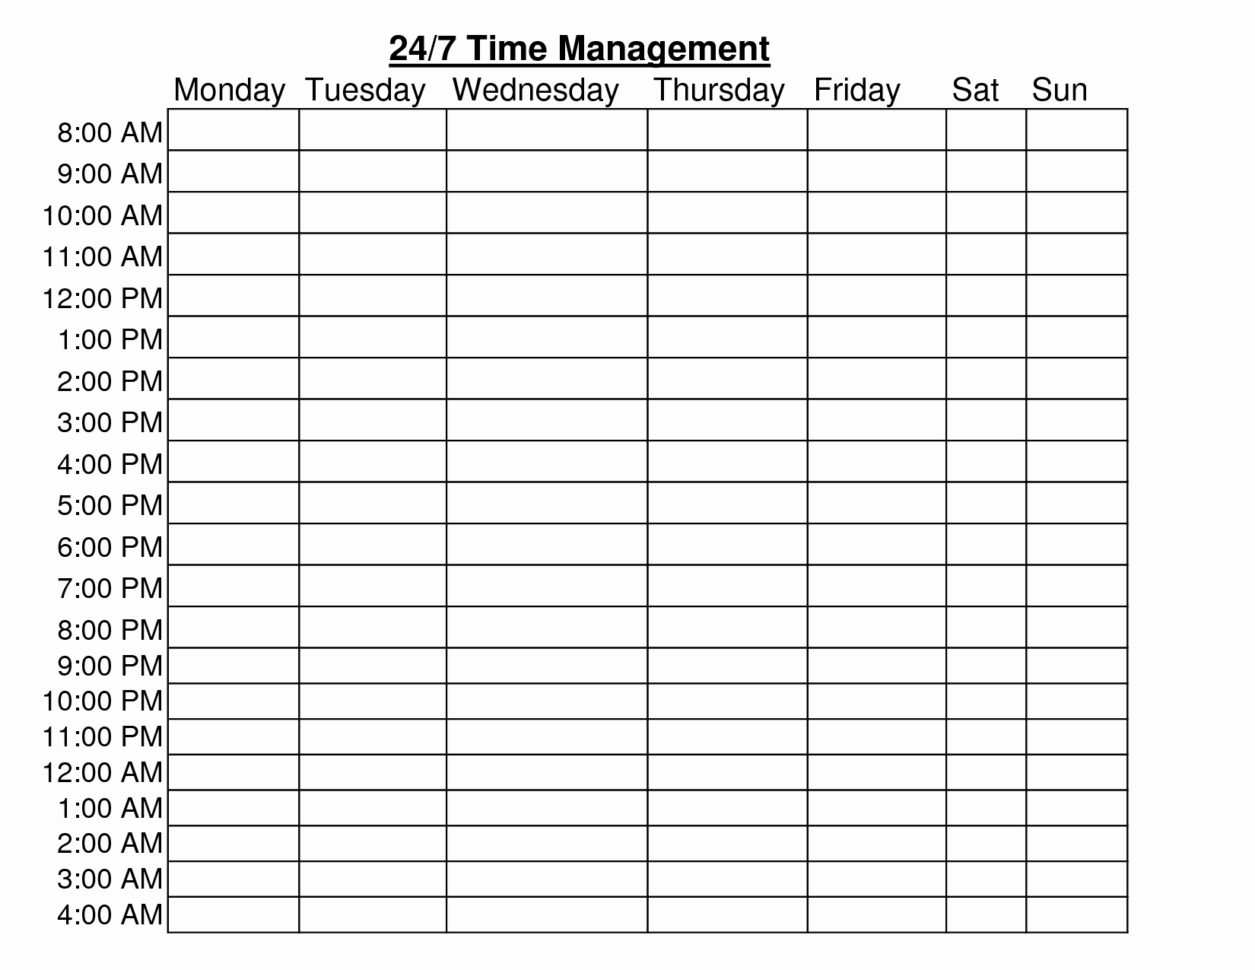 Time Management Sheet Pdf Legal 20 Elegant Rotating Schedule And Time Management Sheets Template